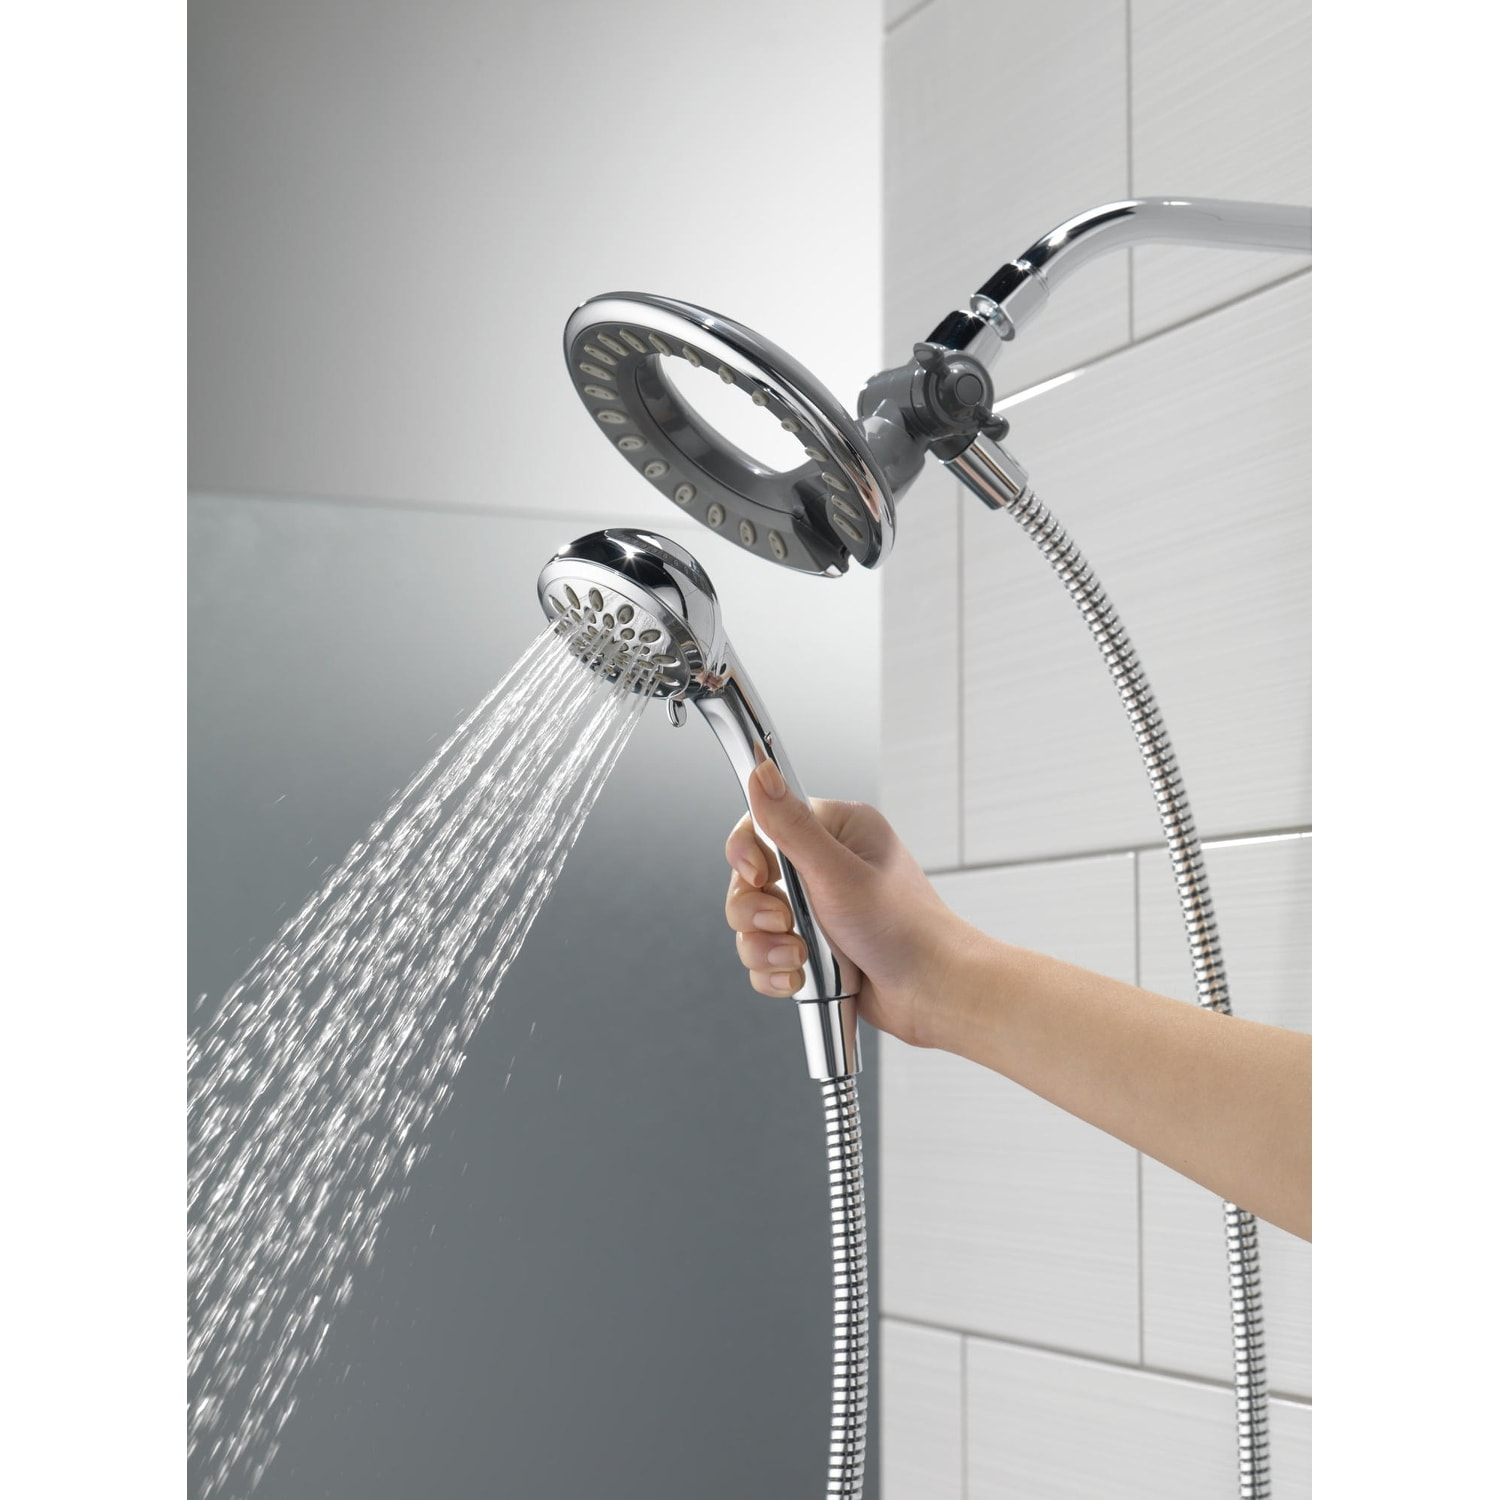 Delta 58065 1 75 Gpm In2ition 2 In 1 Shower Head And Hand Shower With 4 Spray Settings